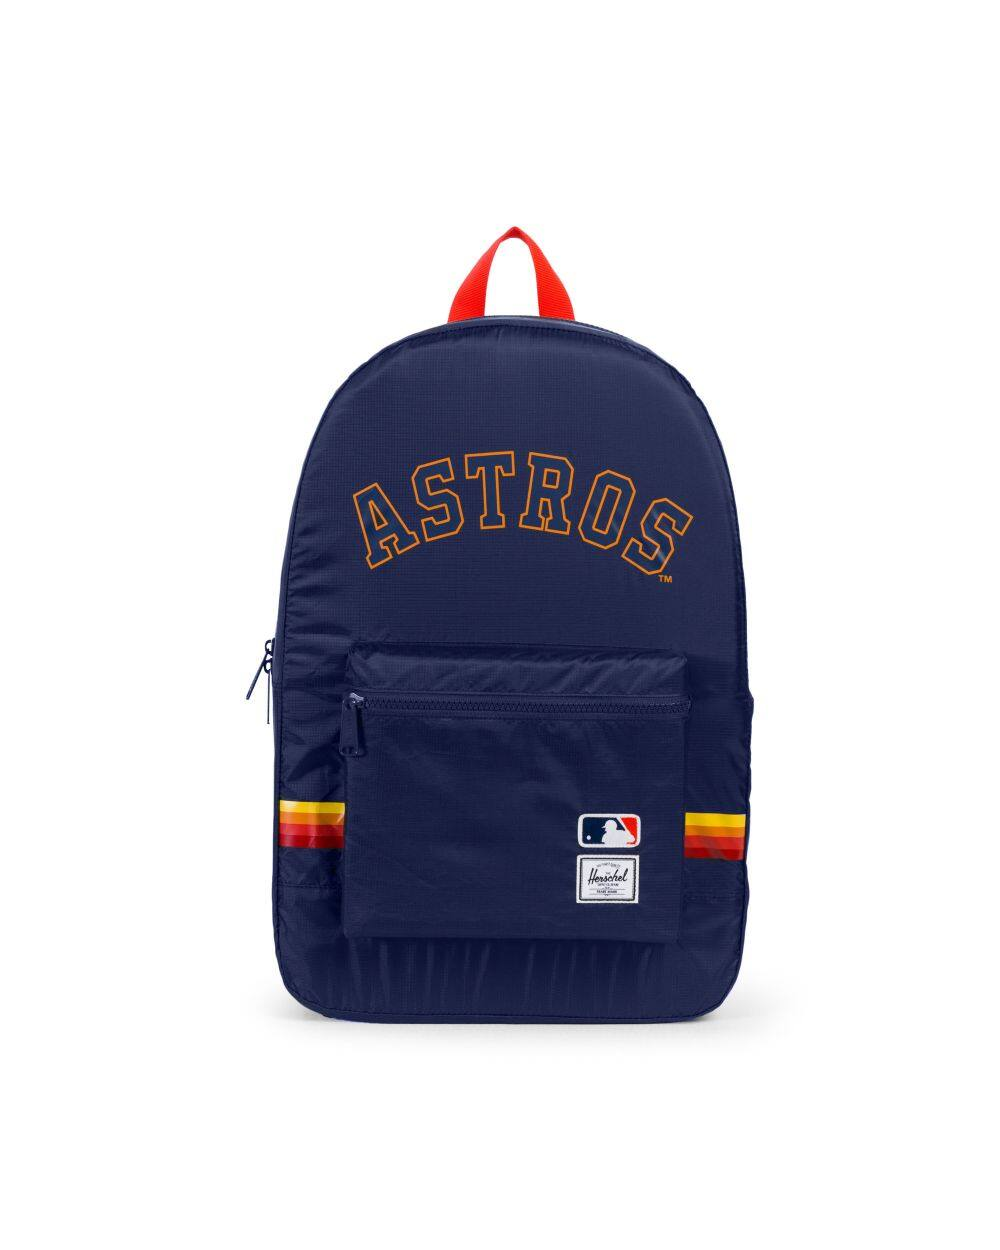 Herschel Supply Co. x MLB Packable Daypacks or Duffles $13.99, Men's Voyage Wind Jacket from $23.99, Women's Sonic Quilt Jacket $28.99 & More + FS  on $30+